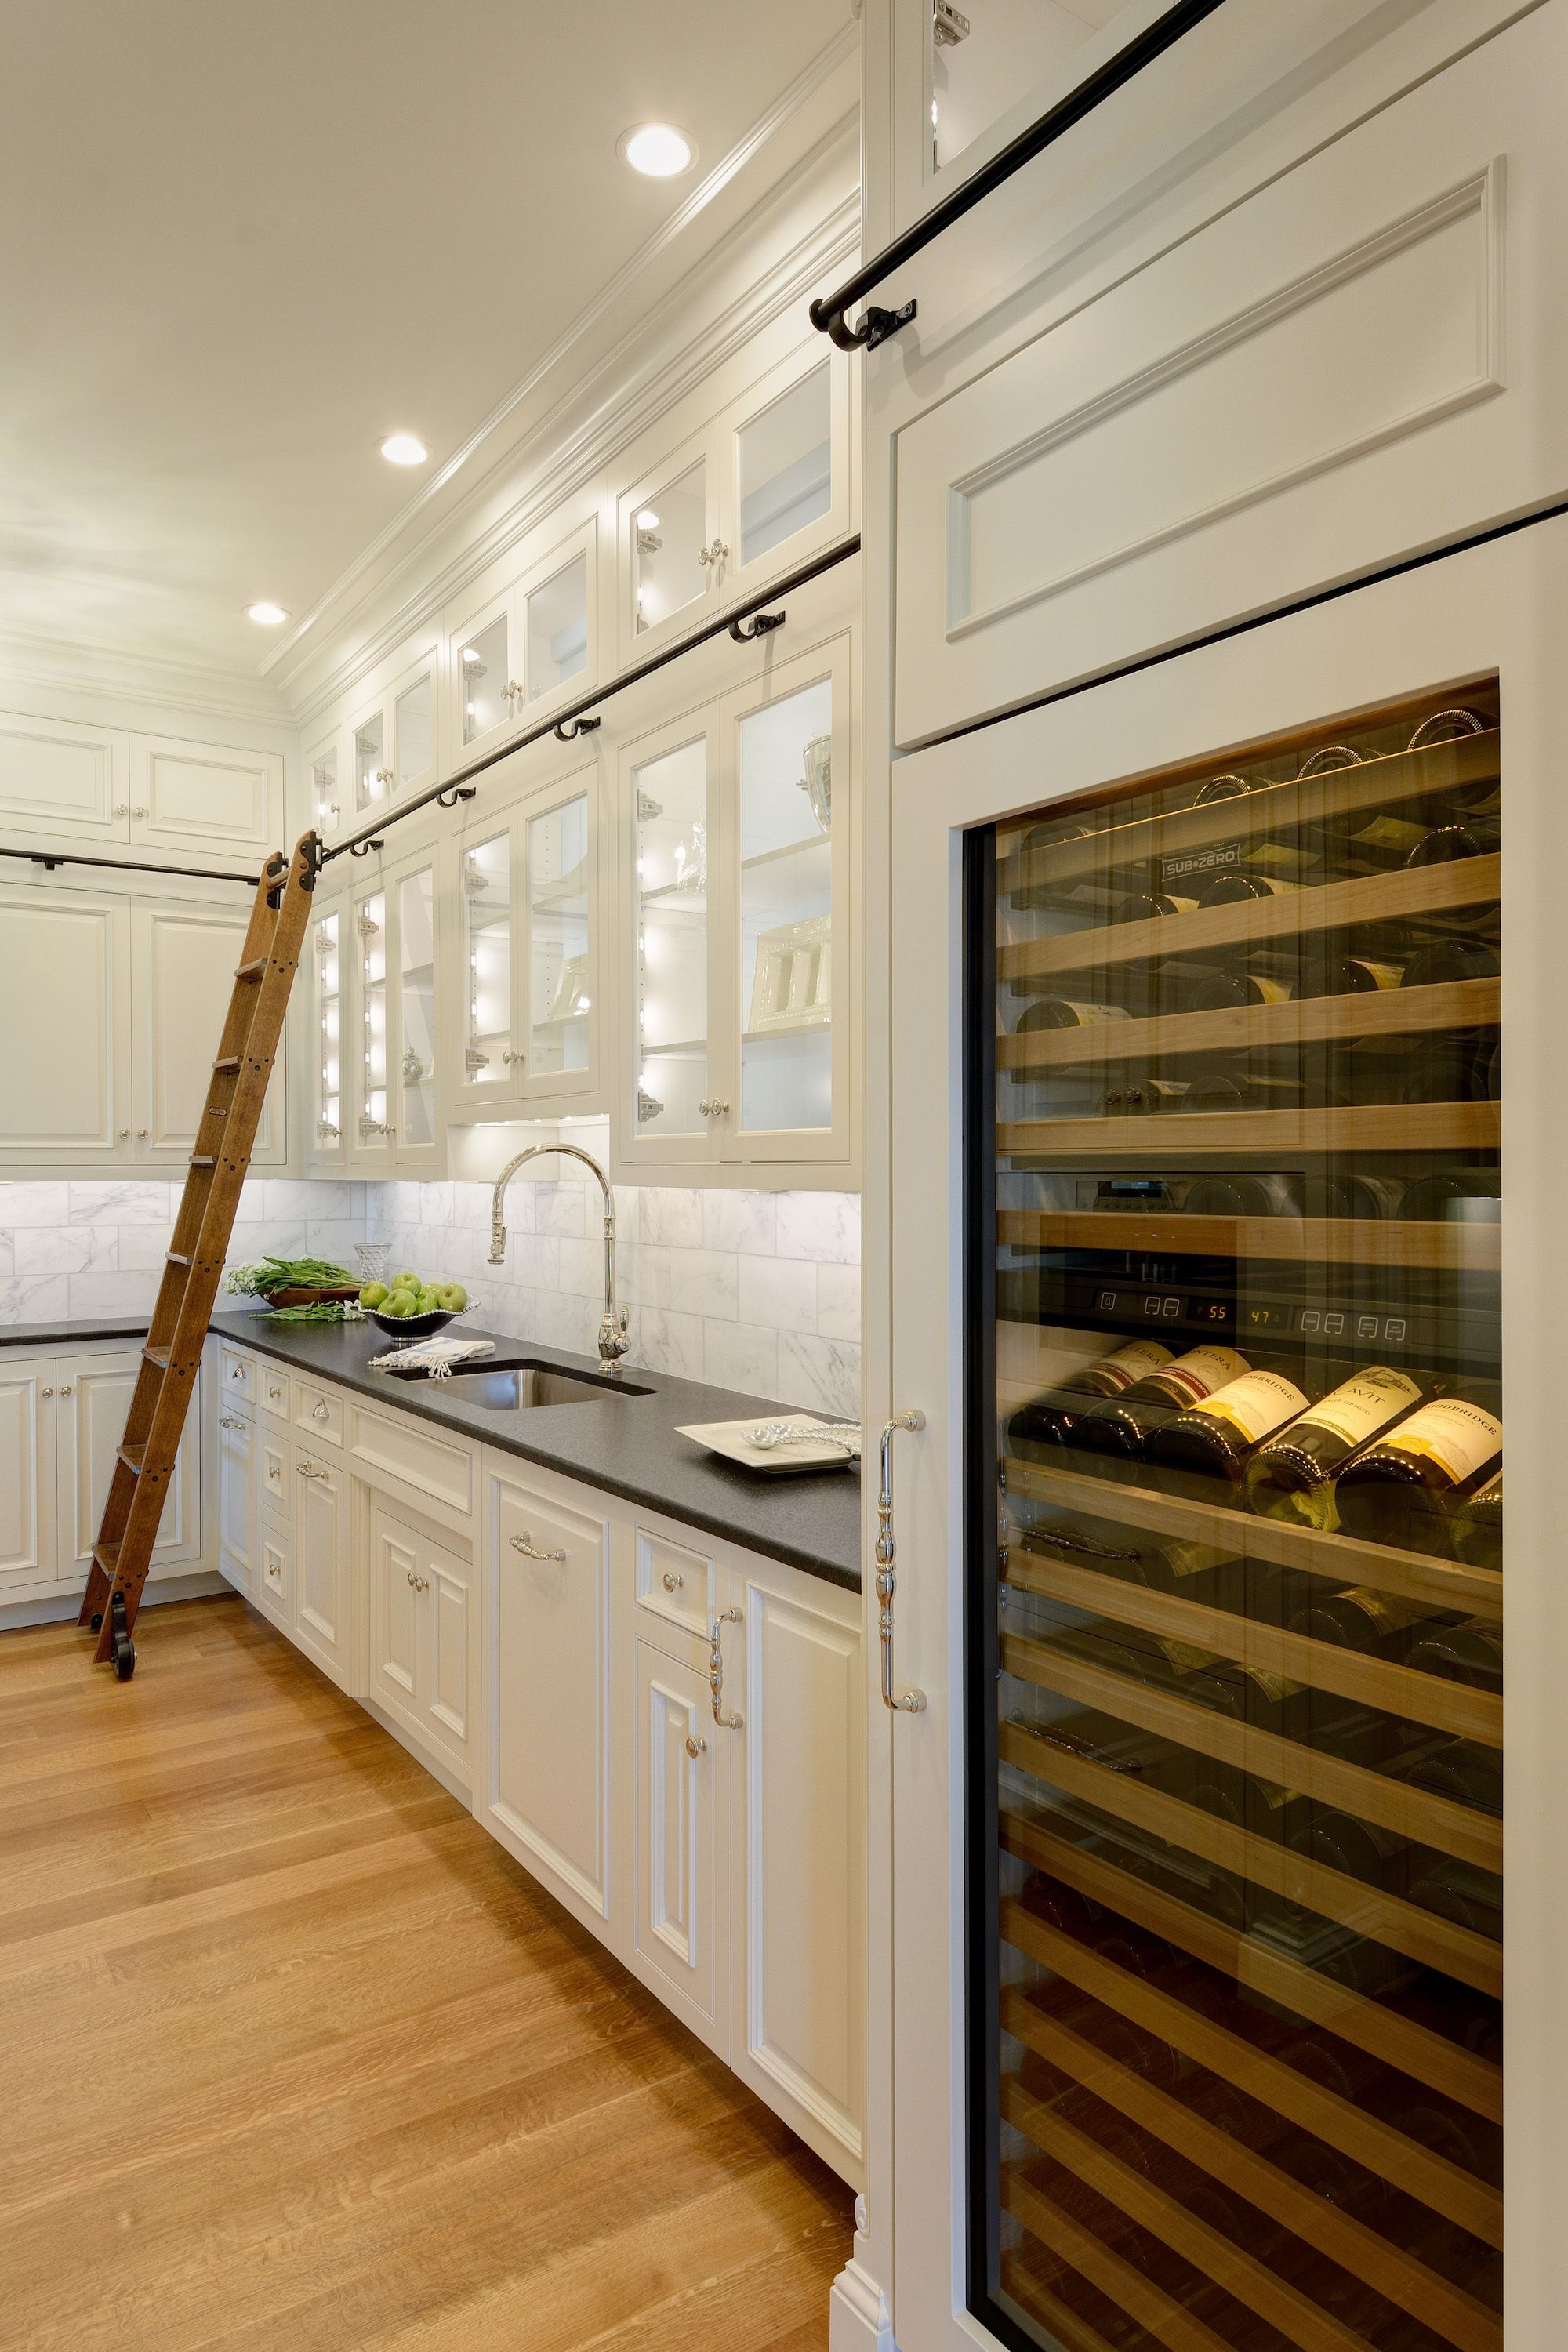 This large pantry area extends back from the wet bar and includes a full-size wine refrigerator and library ladder. #largepantryideas